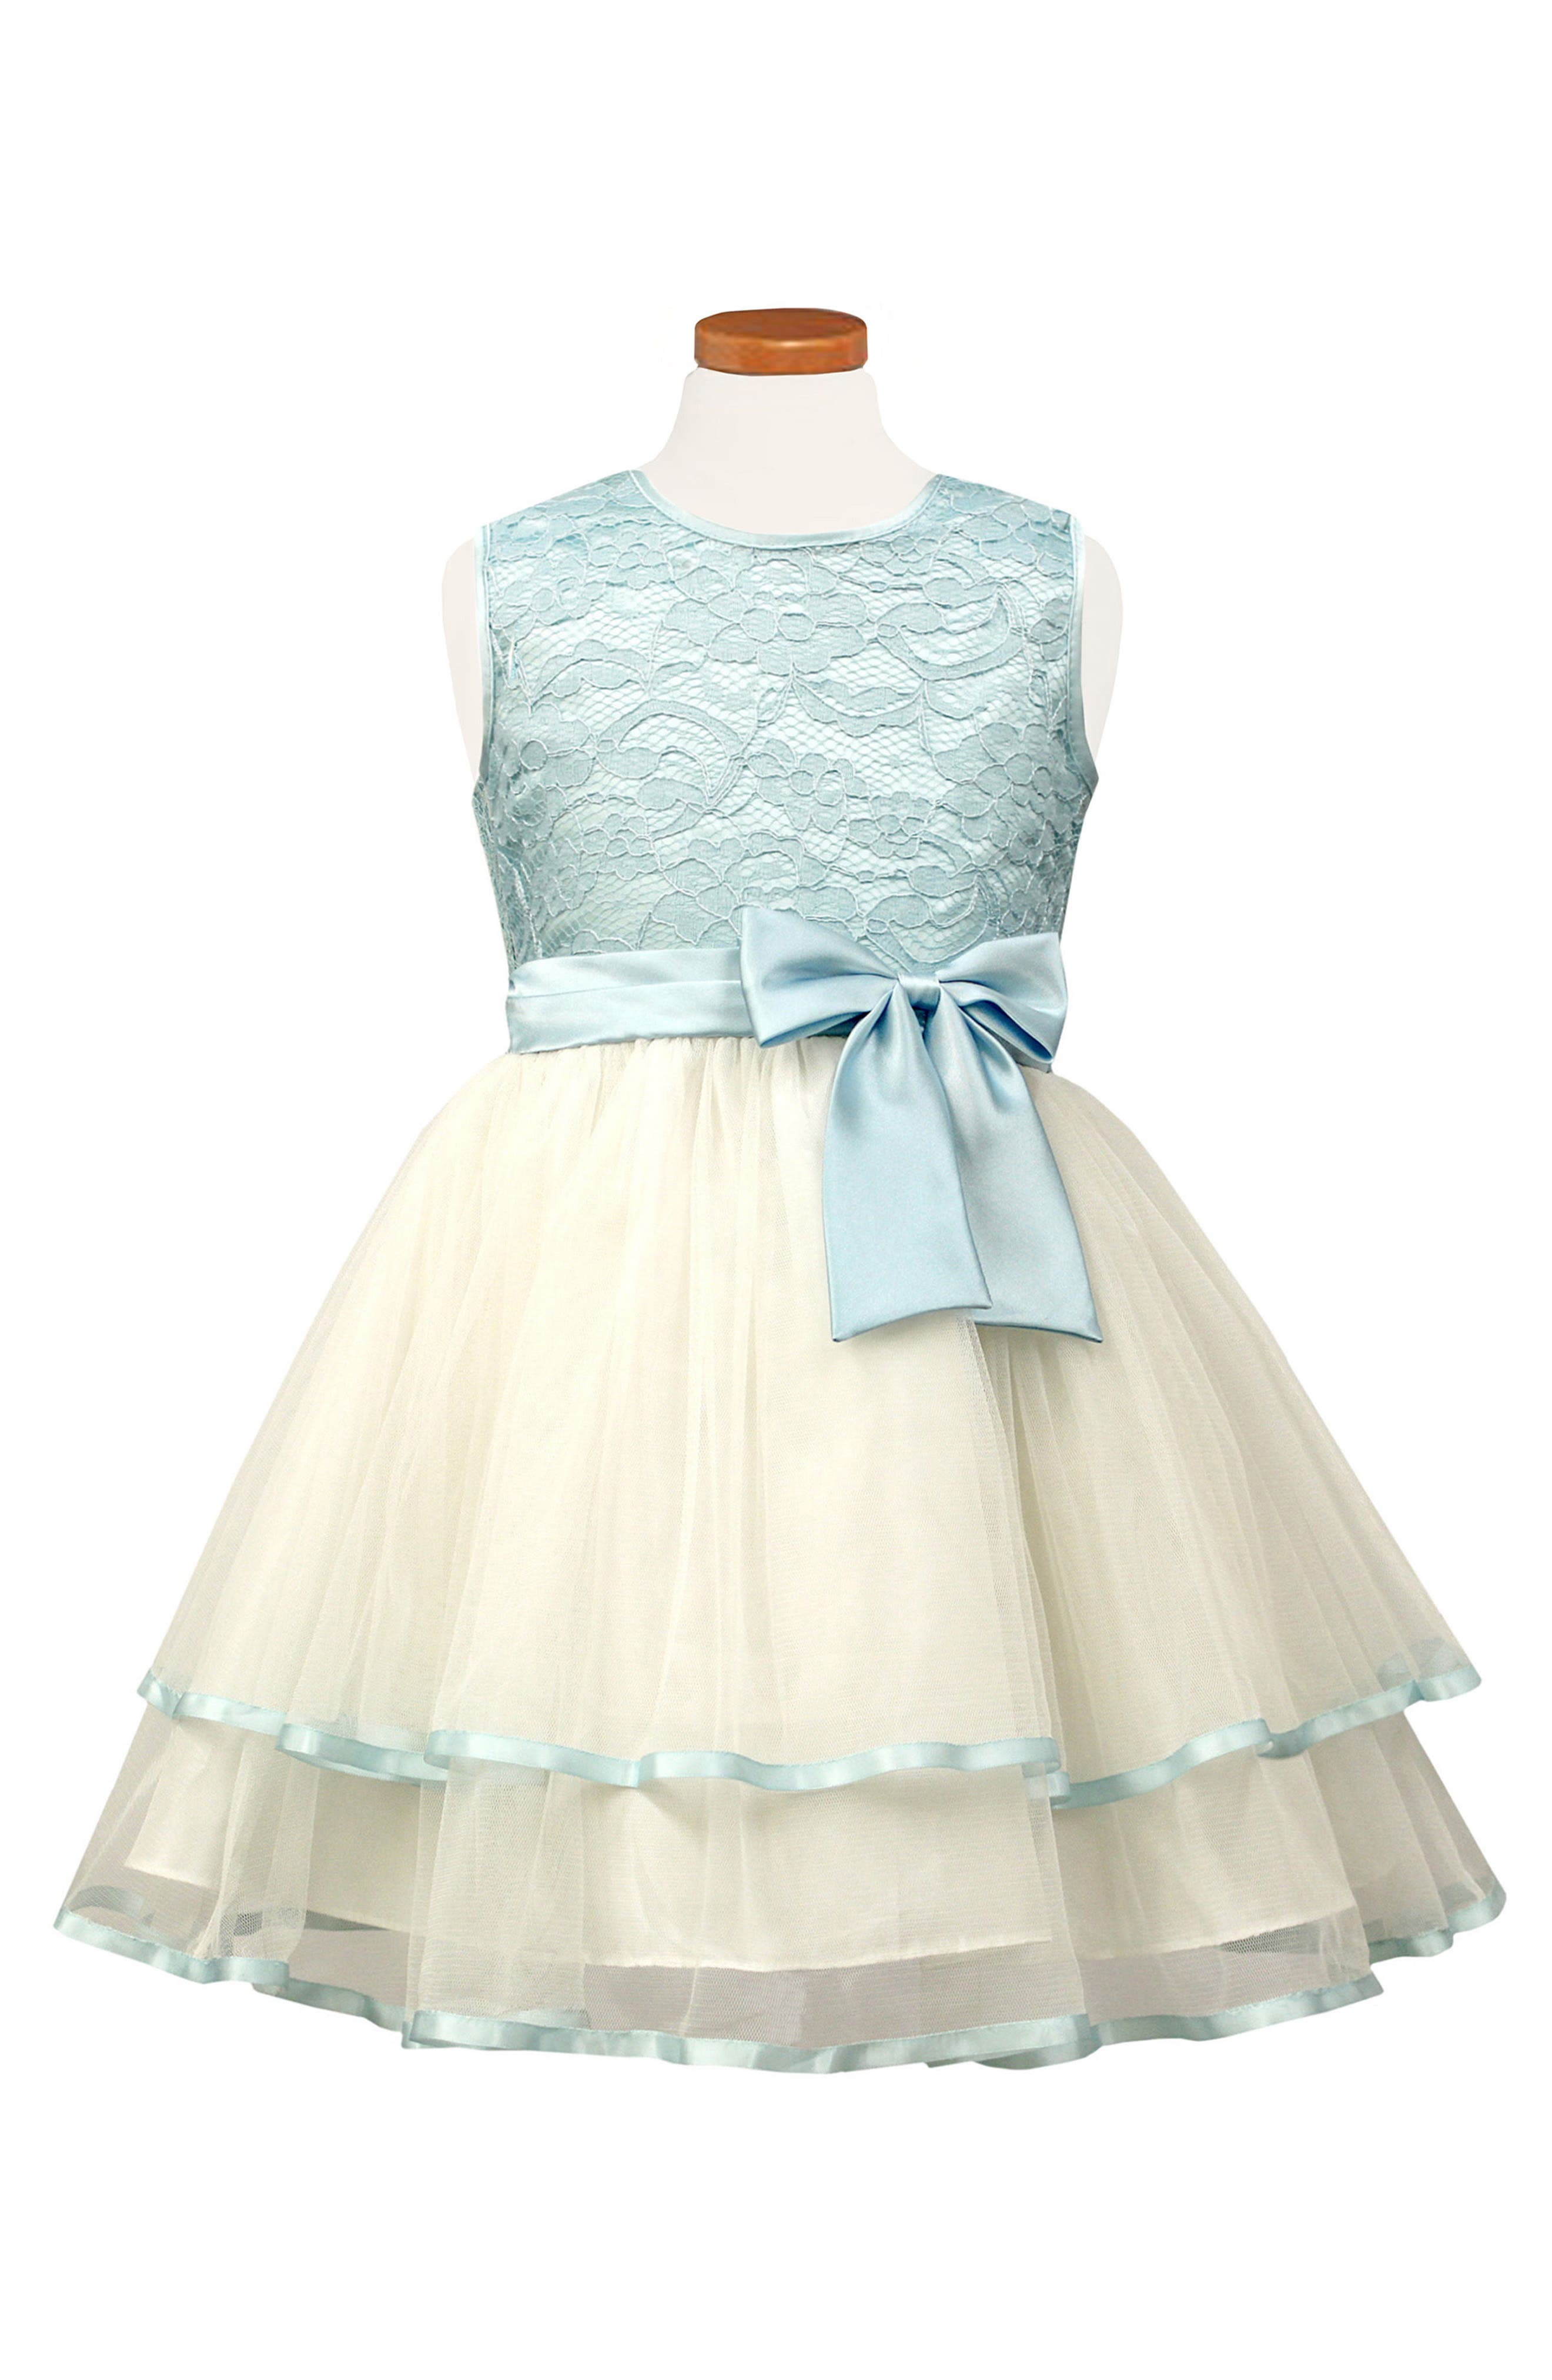 Sorbet Tiered Lace & Tulle Dress (Toddler Girls & Little Girls)